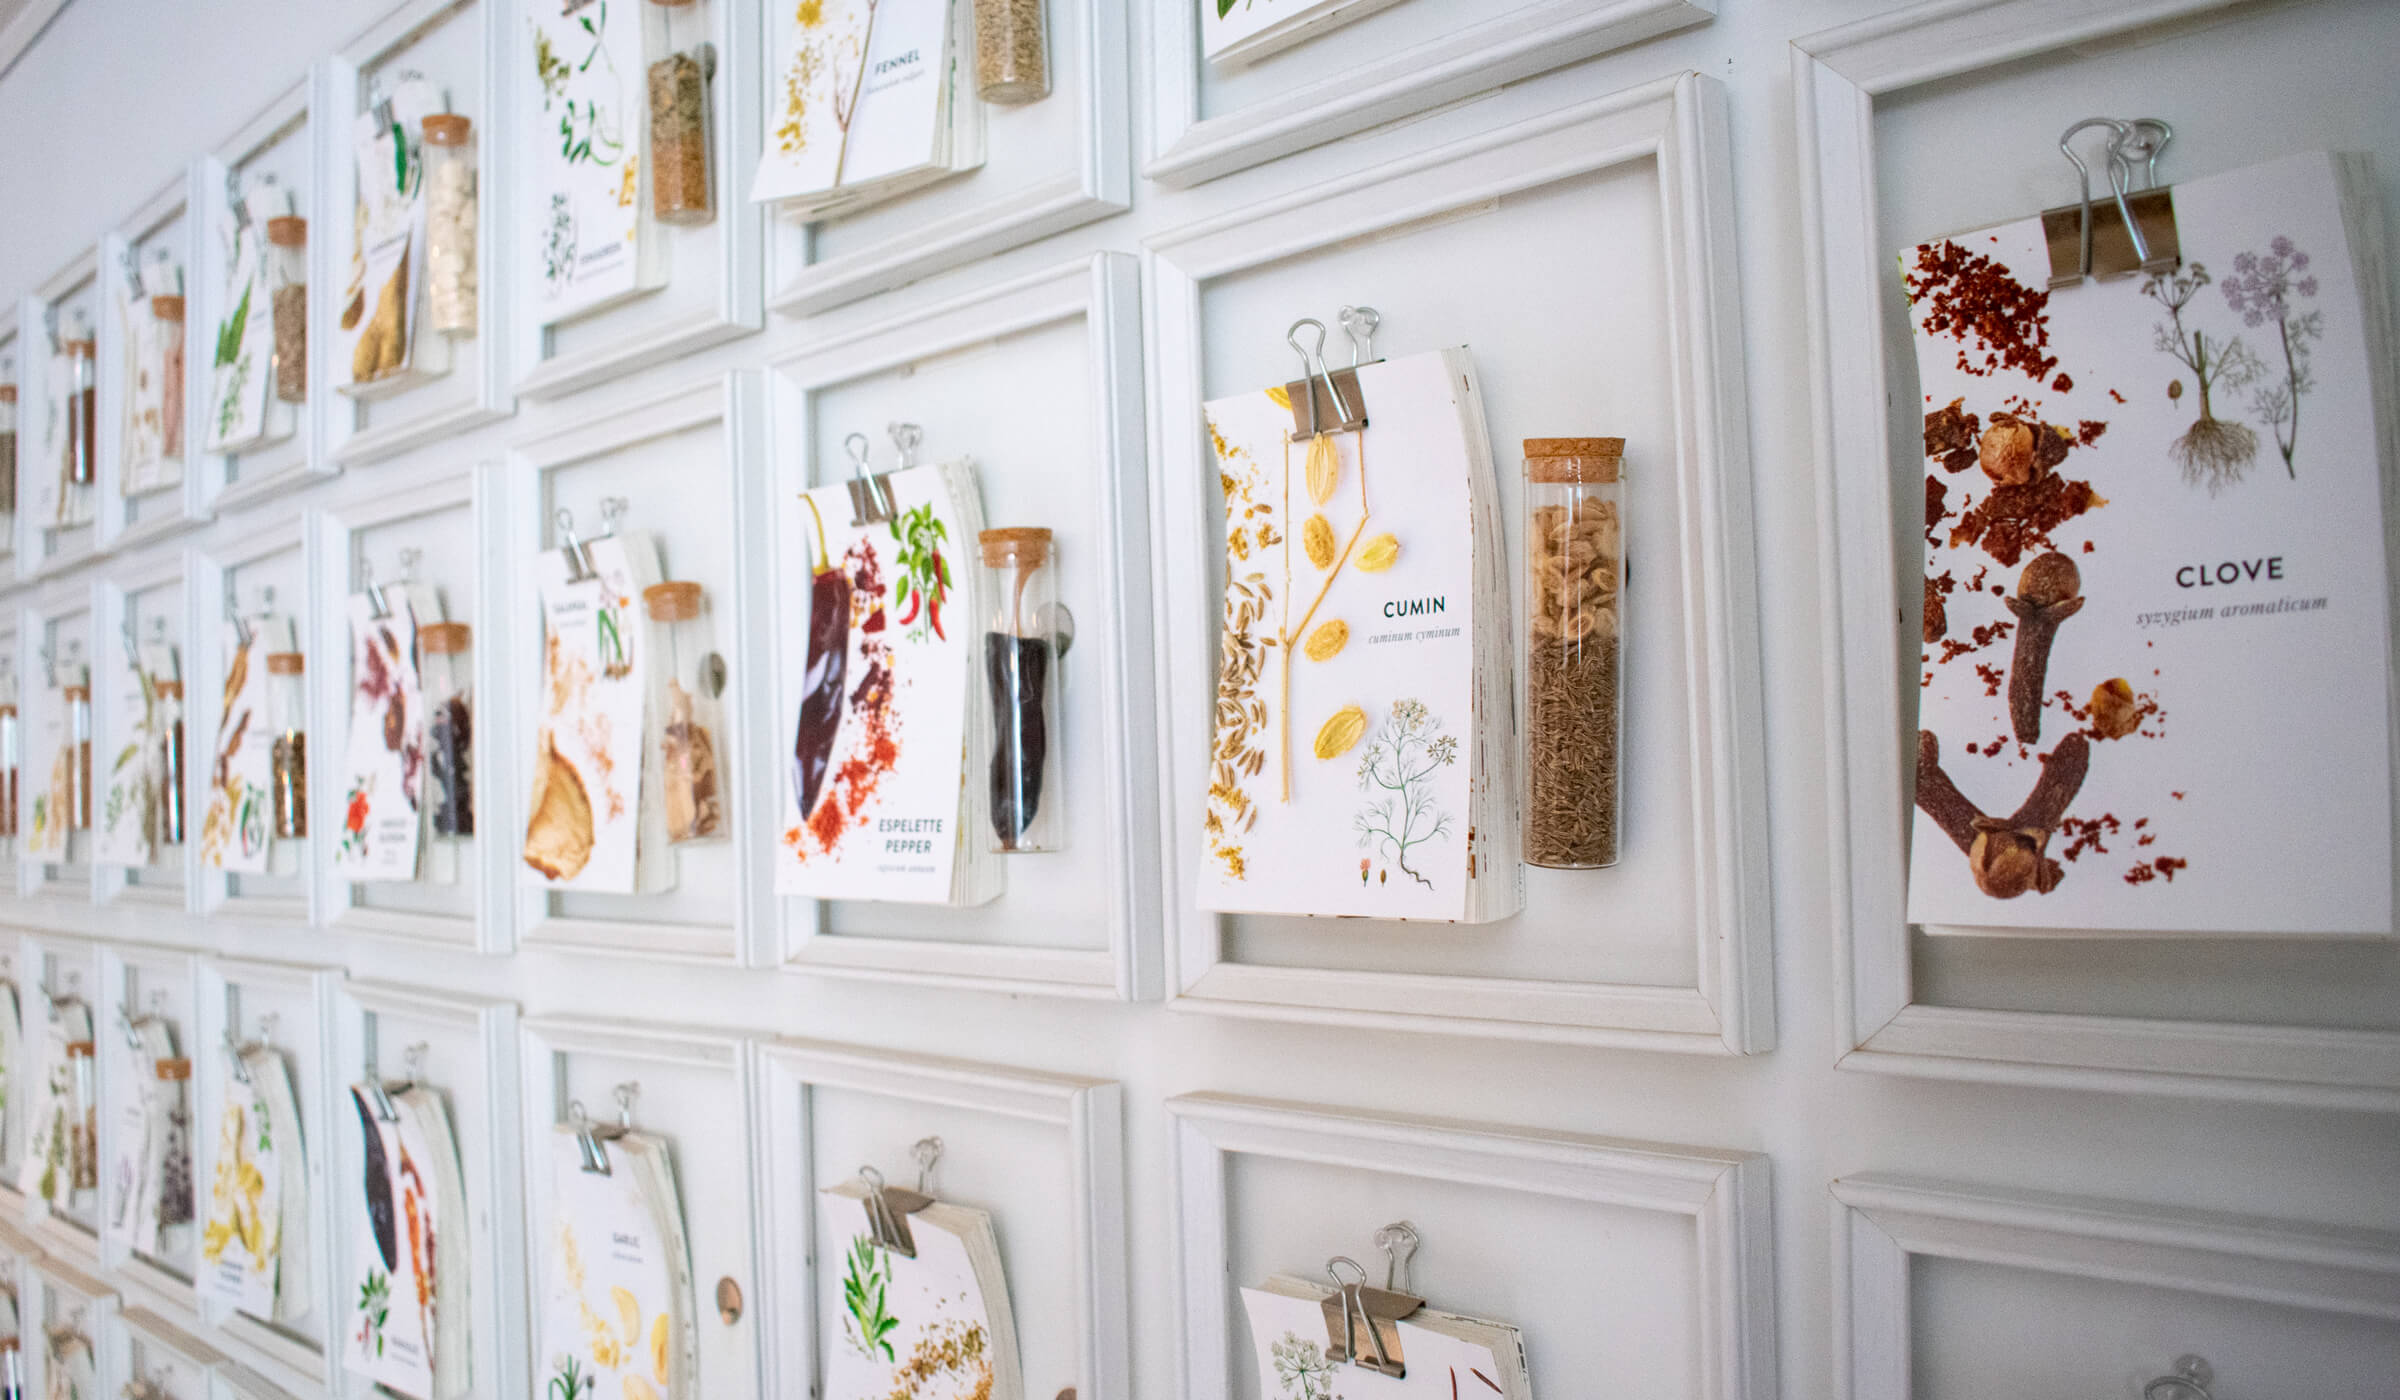 Wall of hand outs about spices at La Boite in New York City